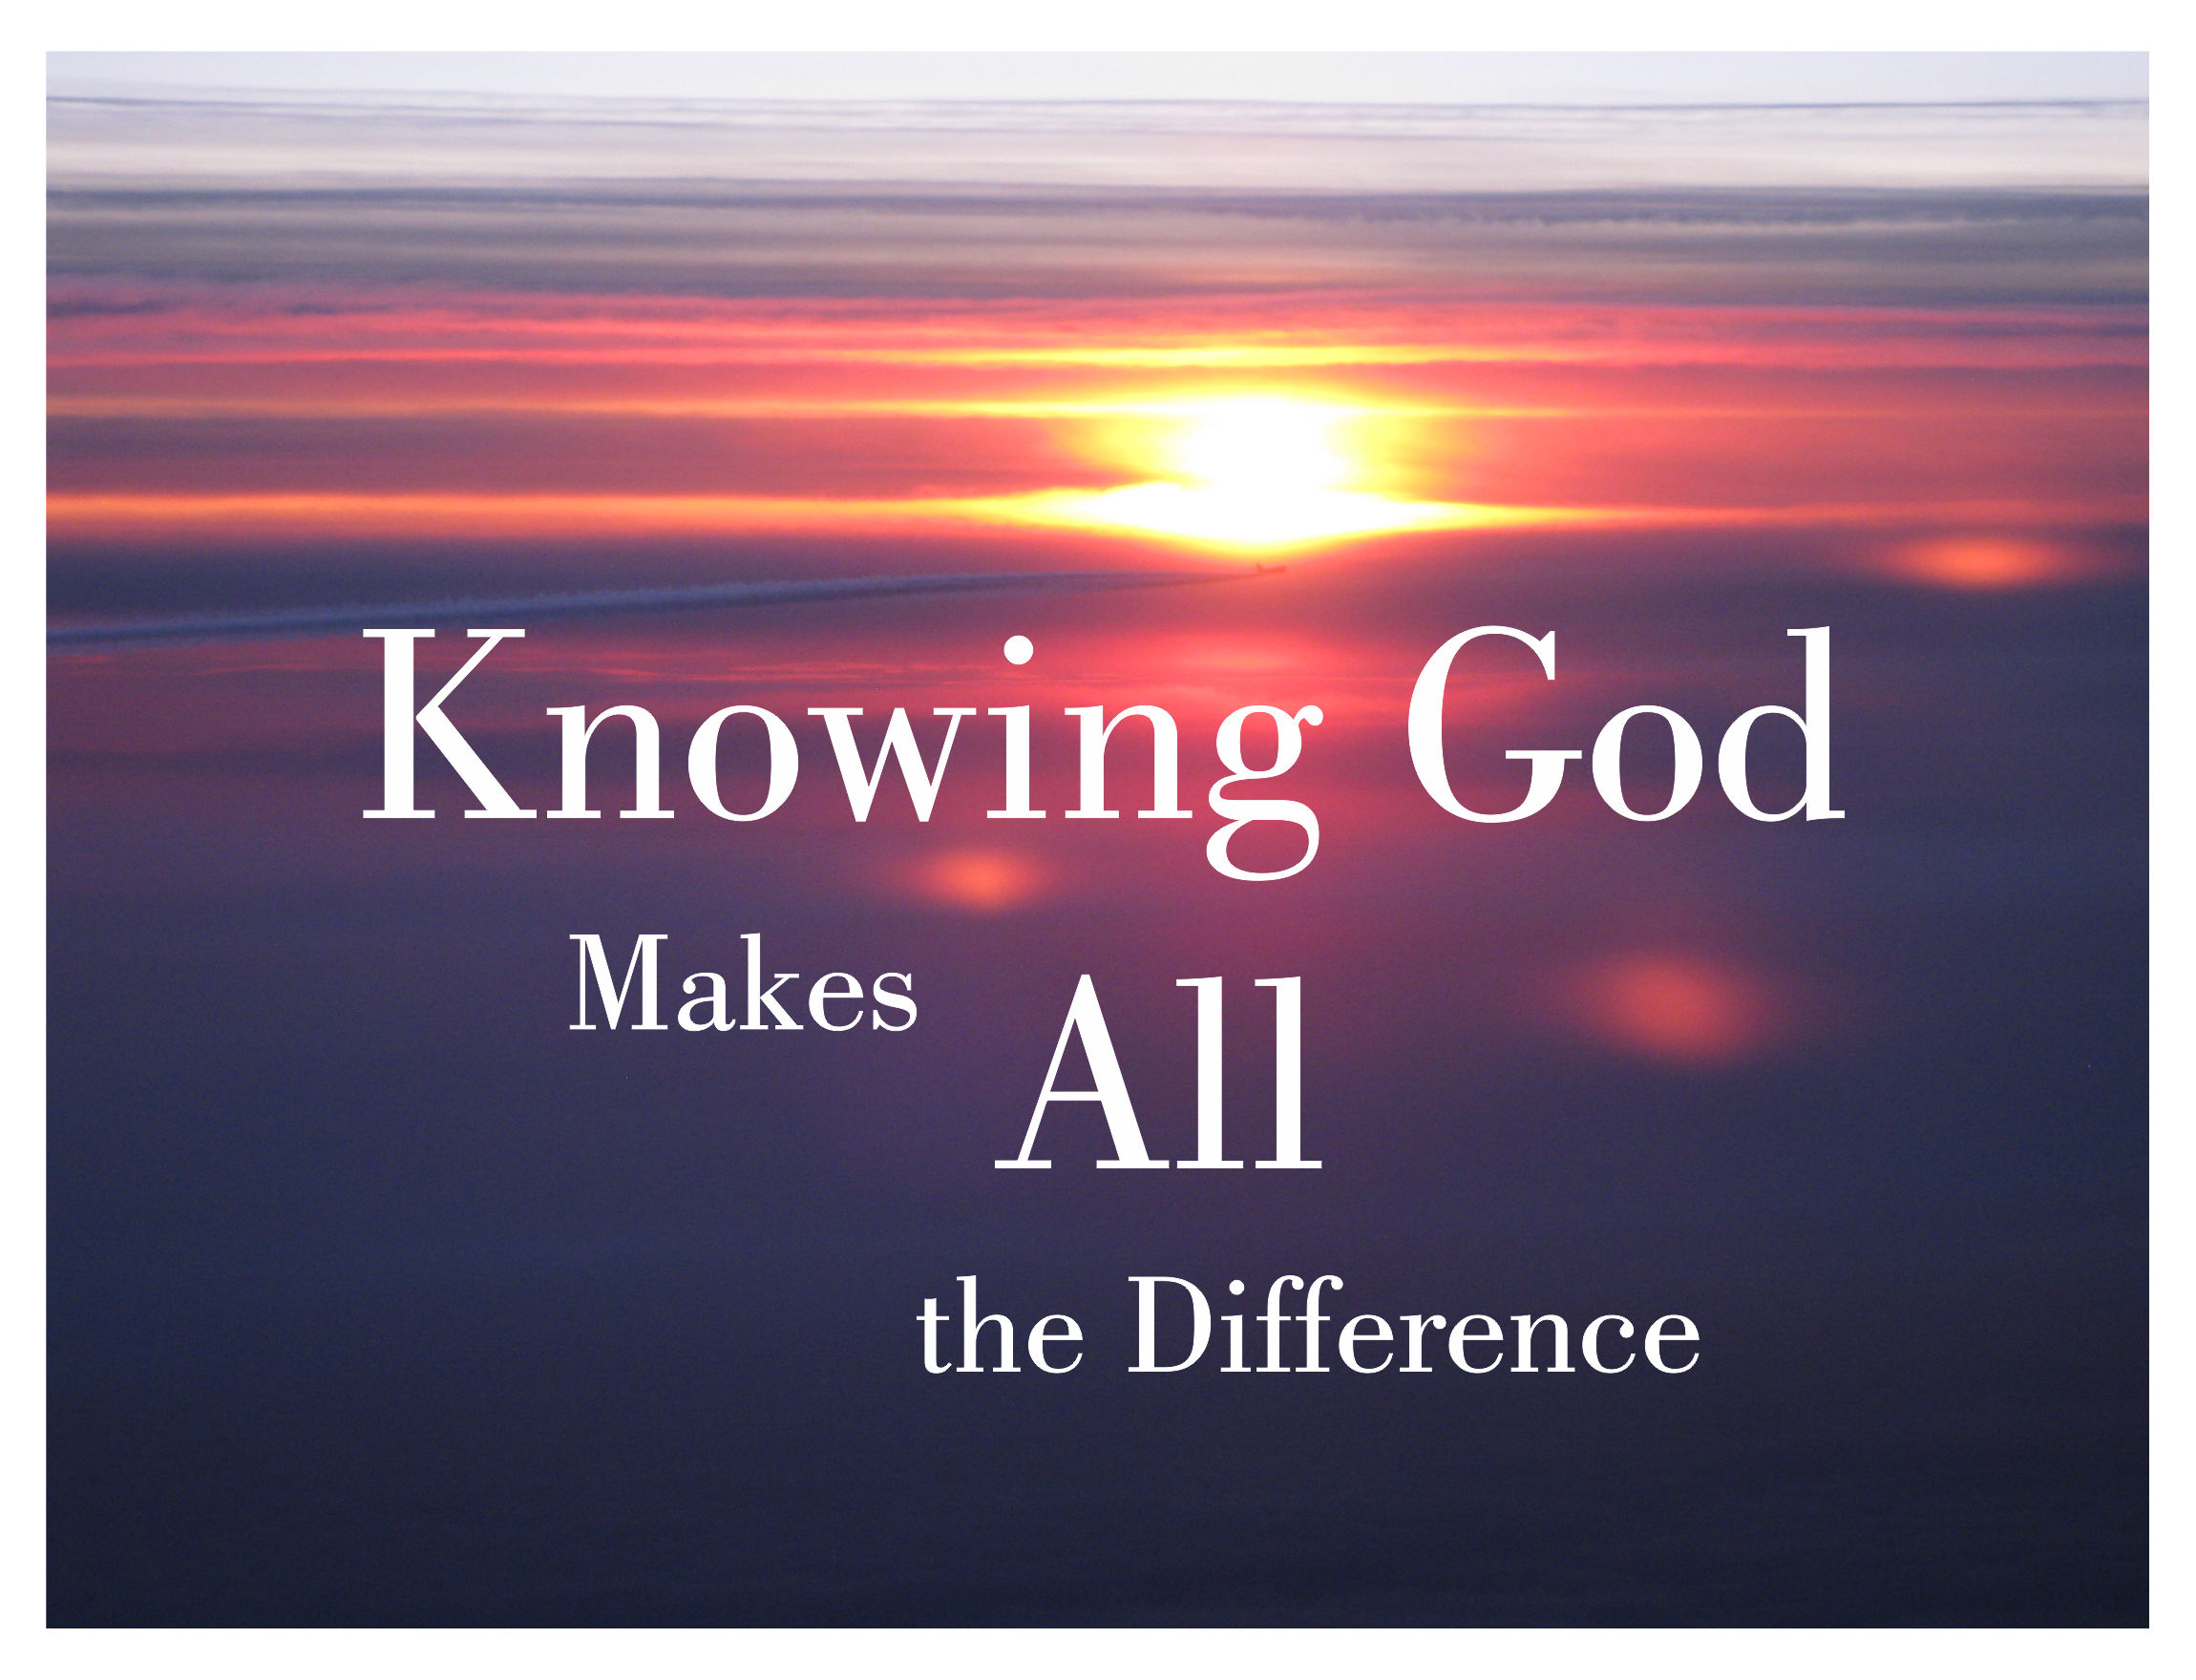 Just Knowing God